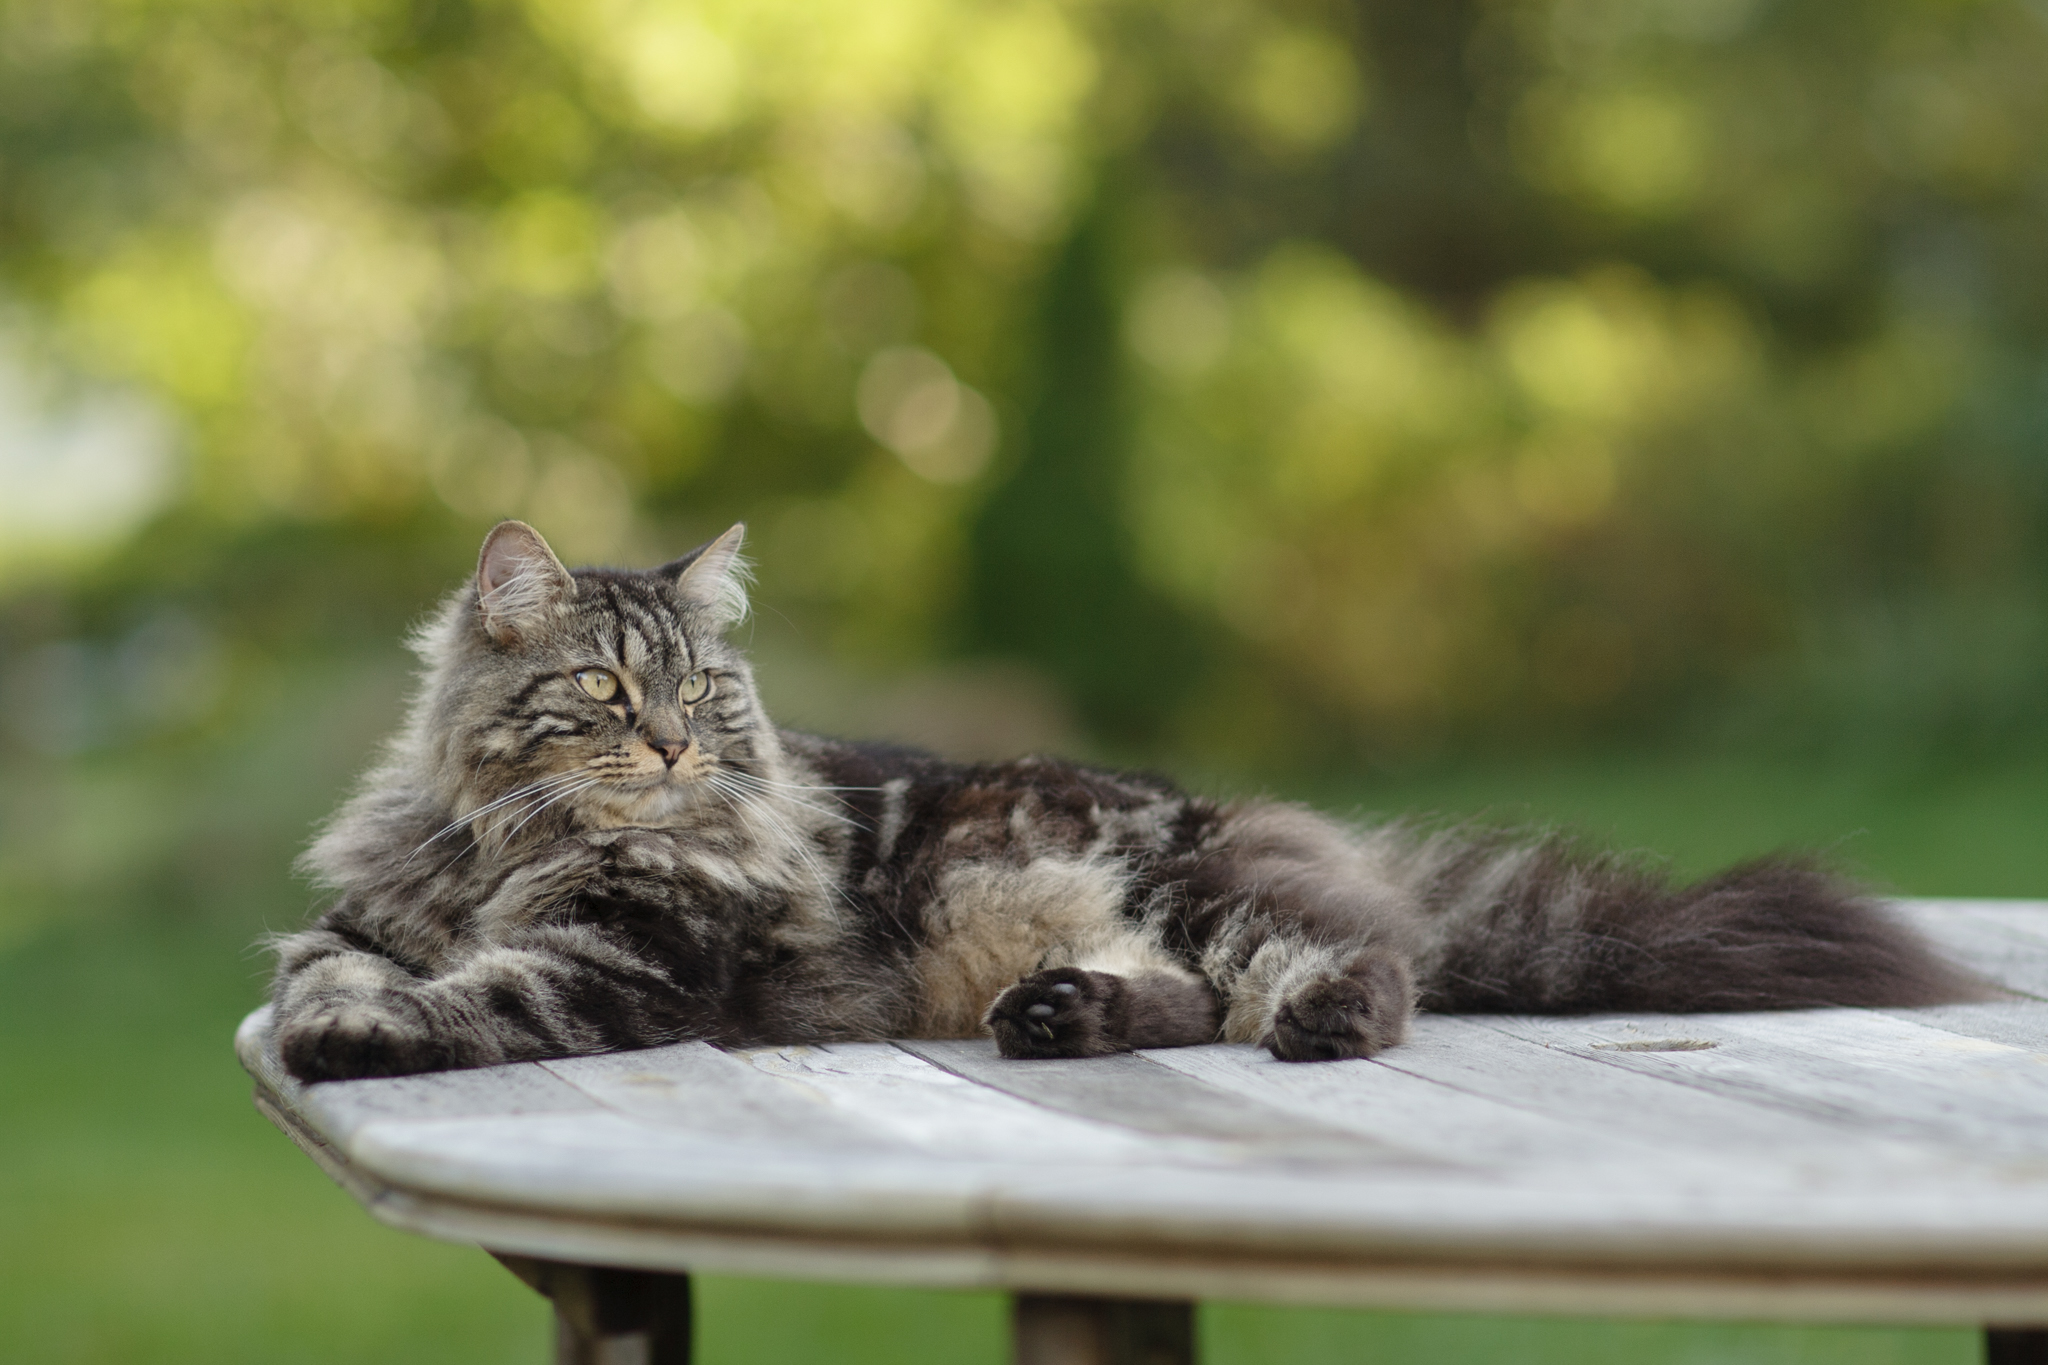 Maine Coon cat on table in RI, shot with 85mm lens